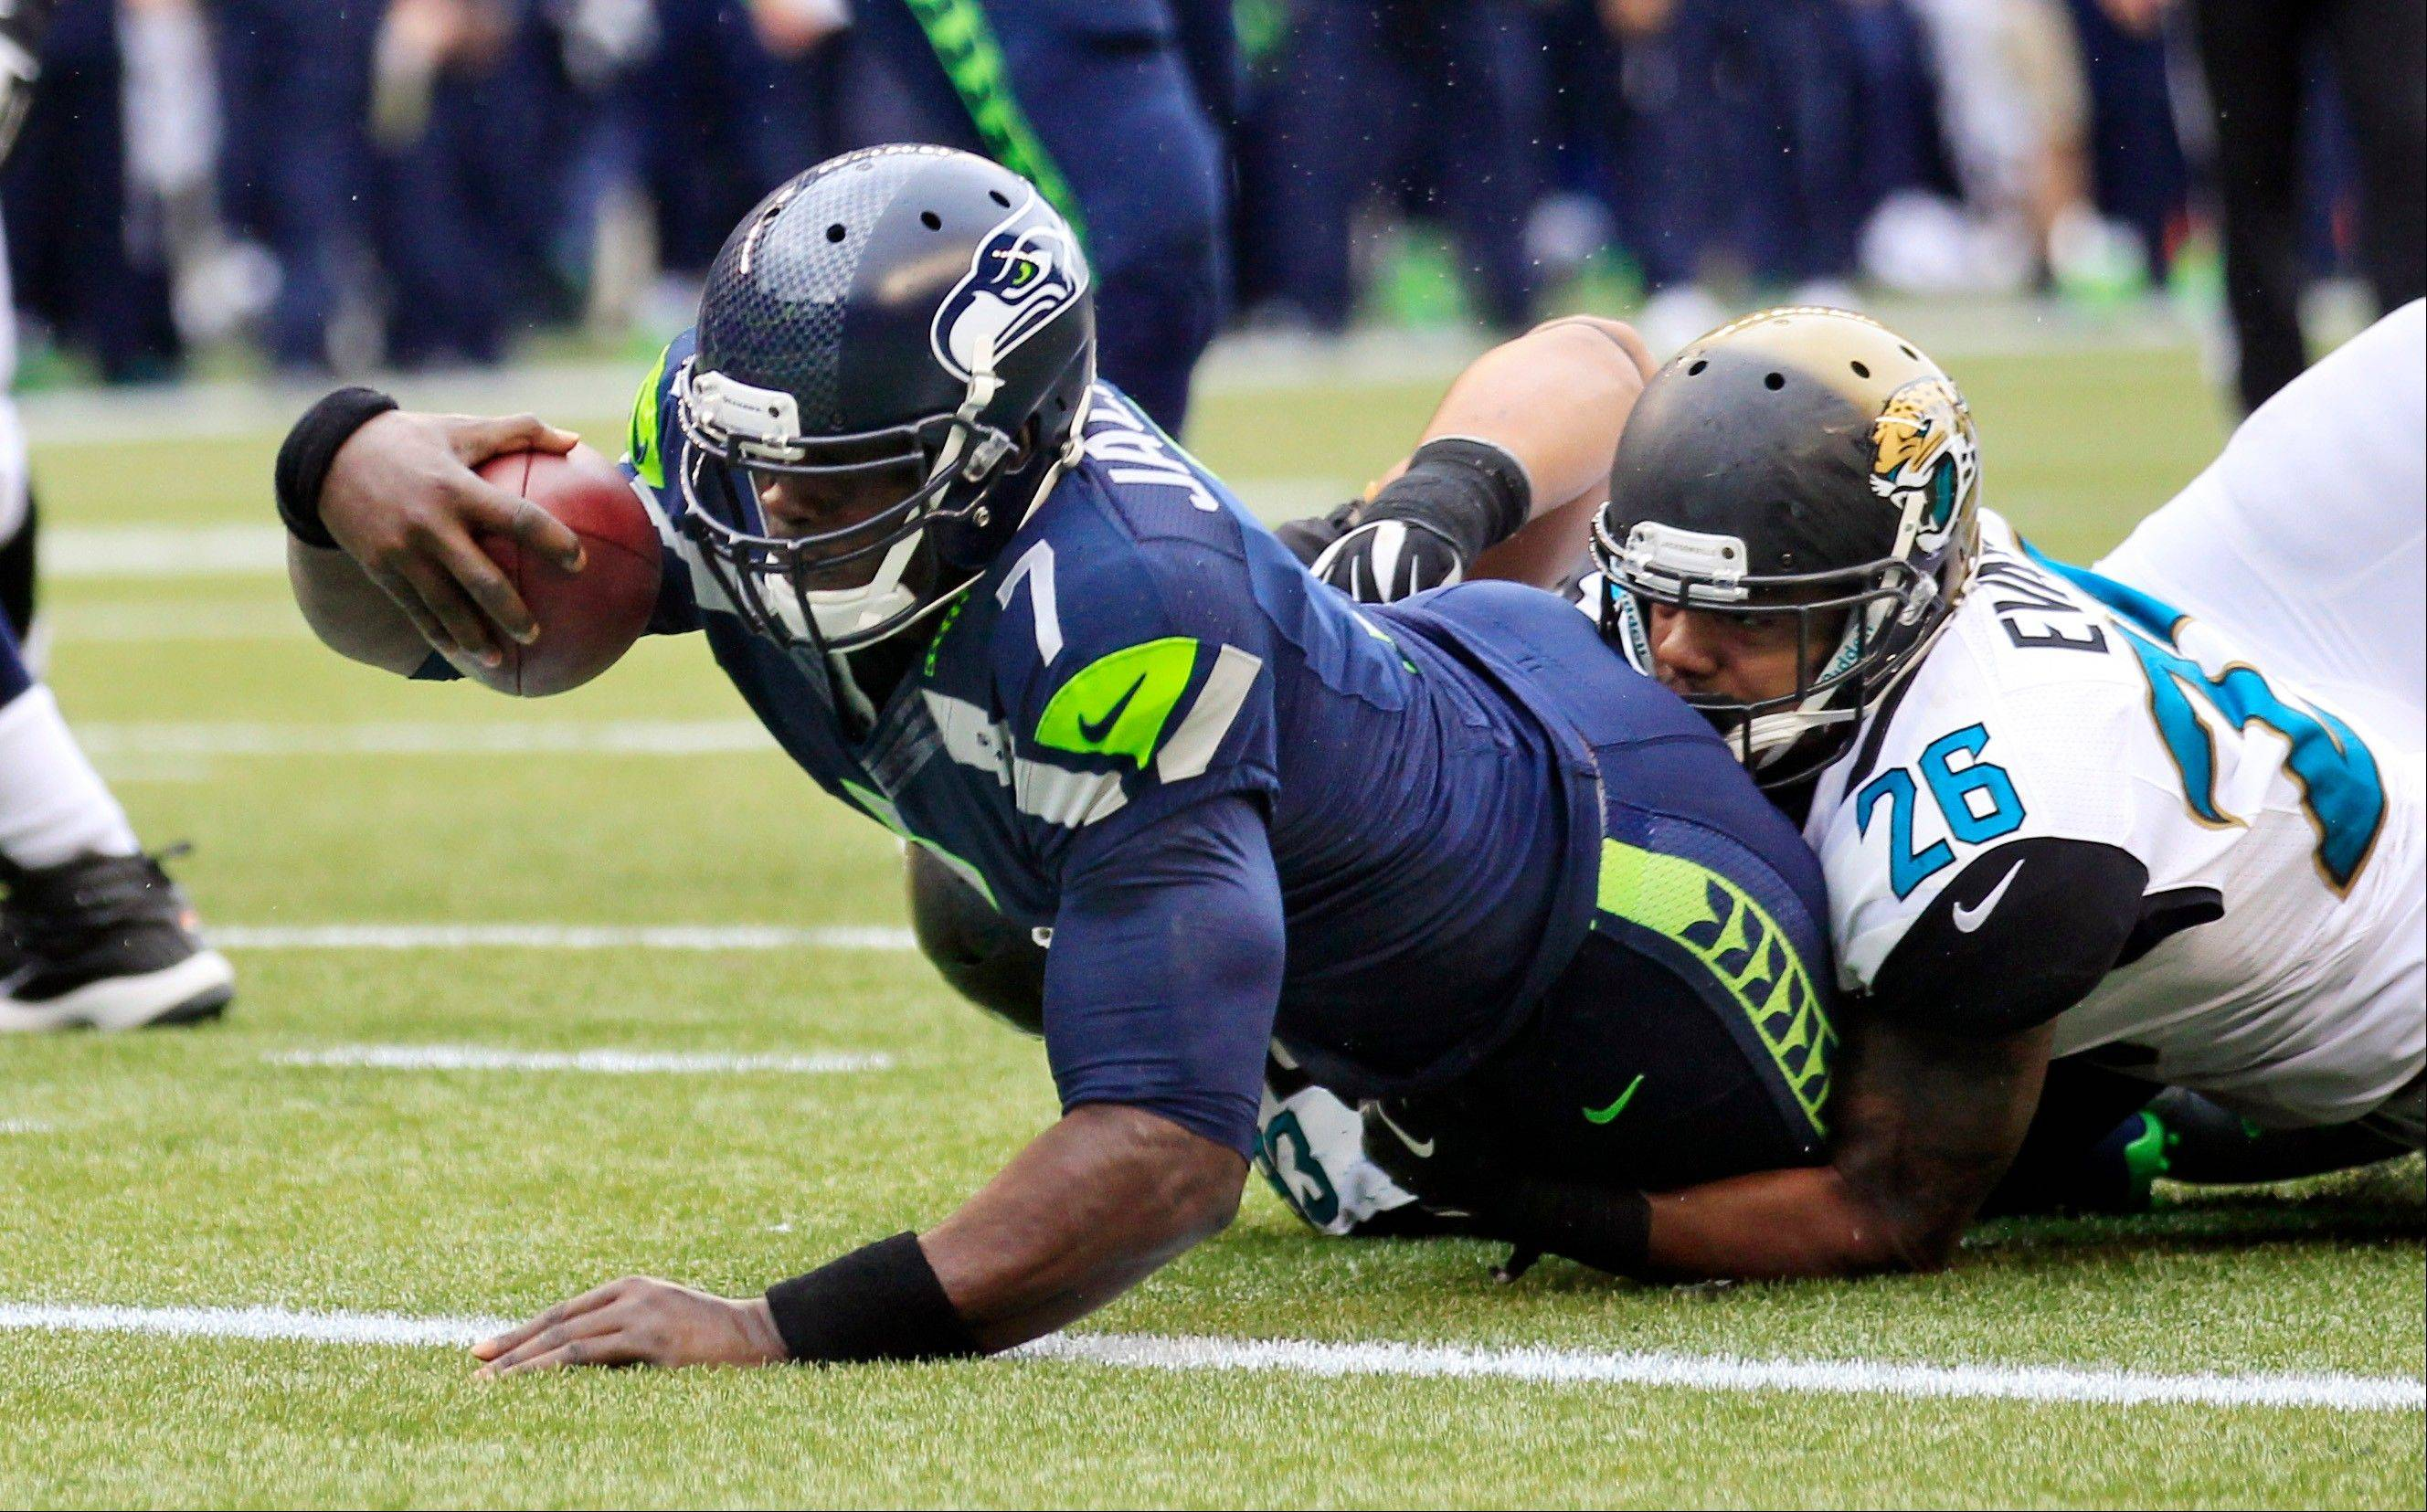 Seattle Seahawks backup quarterback Tarvaris Jackson (7) scores on a keeper as Jacksonville Jaguars� Josh Evans brings him down in the second half of an NFL football game on Sunday, Sept. 22, 2013, in Seattle.